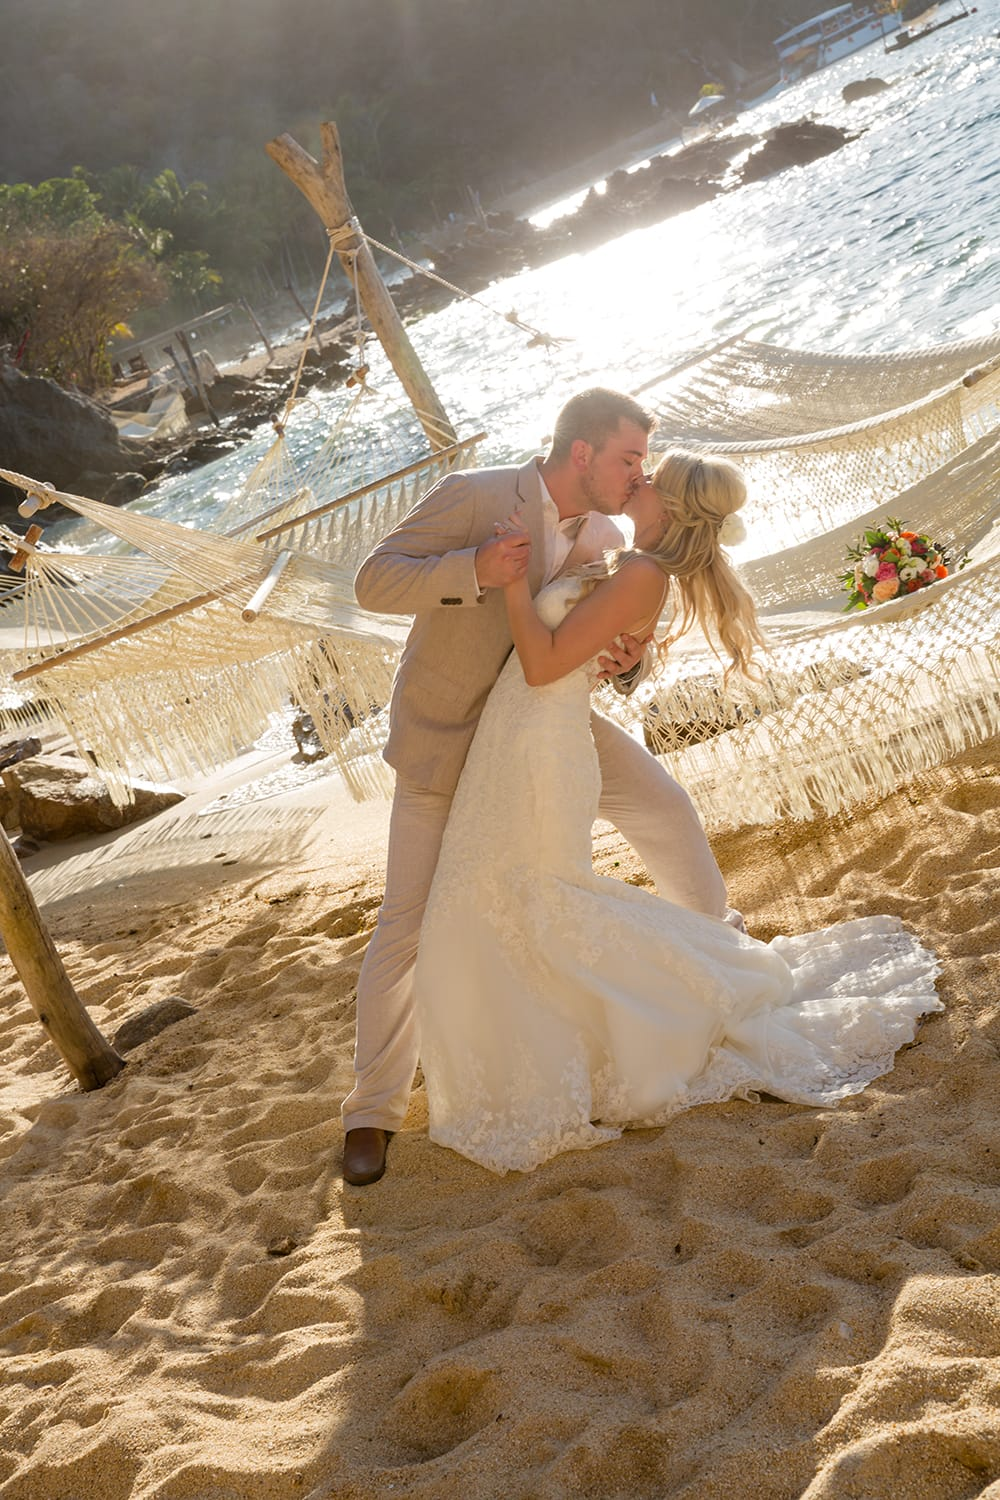 Romantic kiss in front of the Pacific ocean during the first look at a destination wedding in Mexico